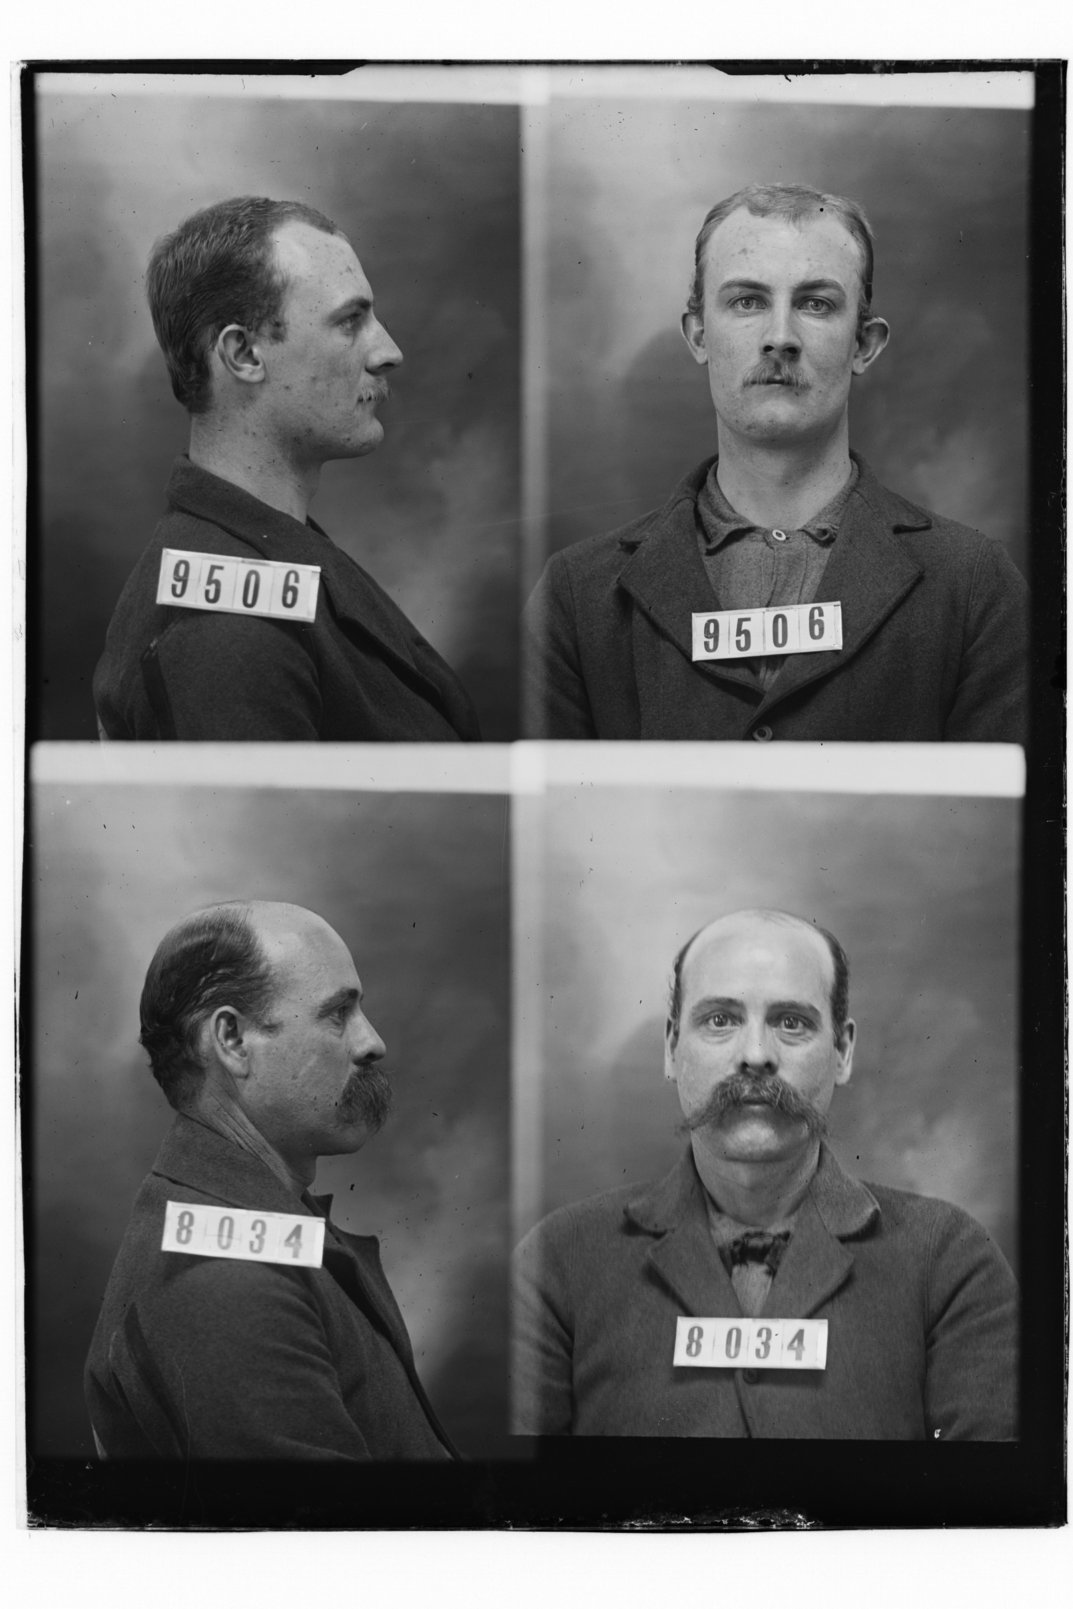 Albert Williams and William Fay, prisoners 9506 and 8034